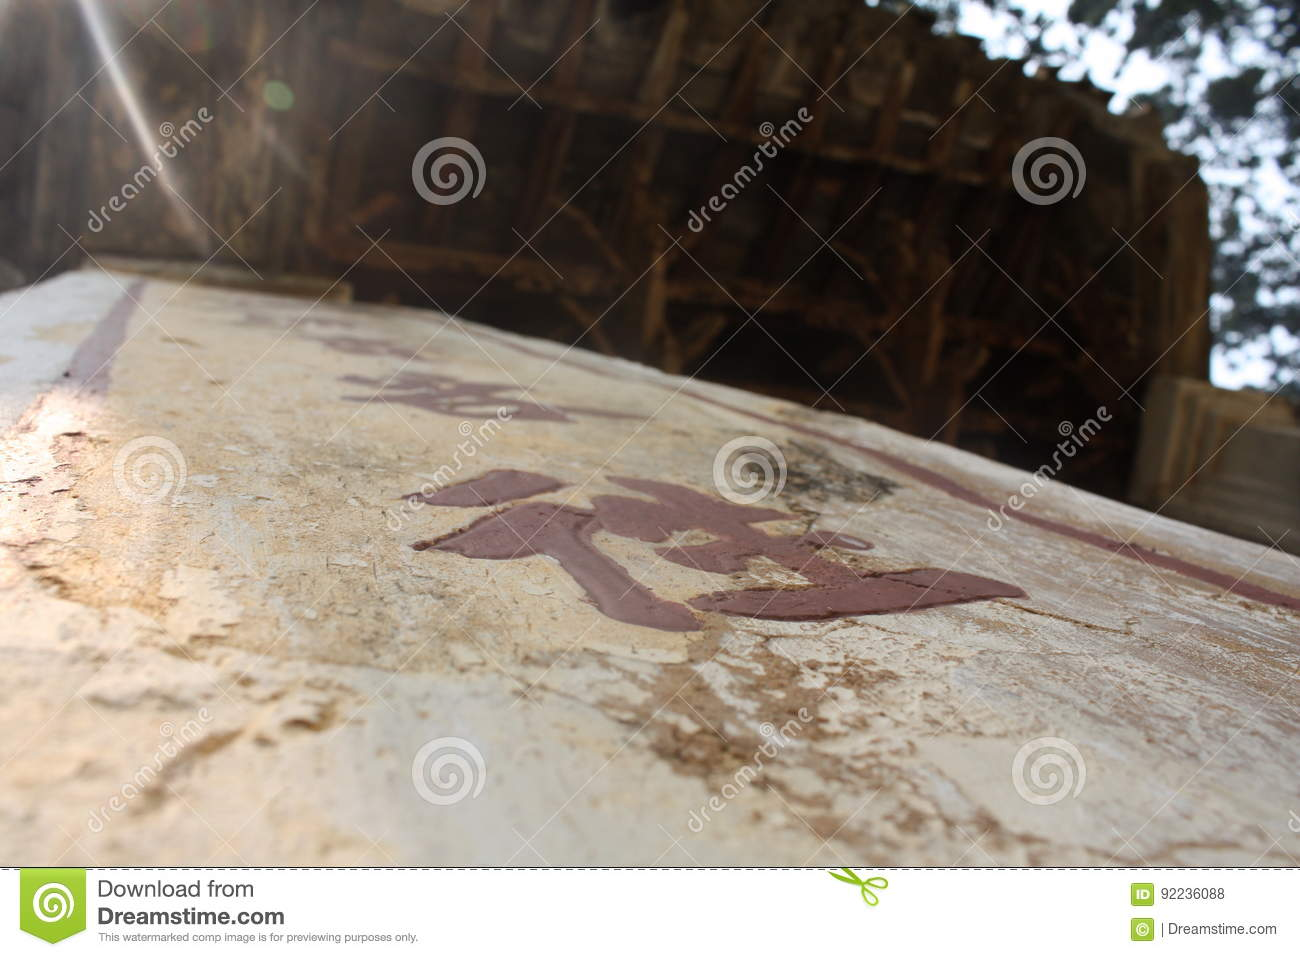 Ancient Chinese Symbols in a Buddhist Temple in Asia